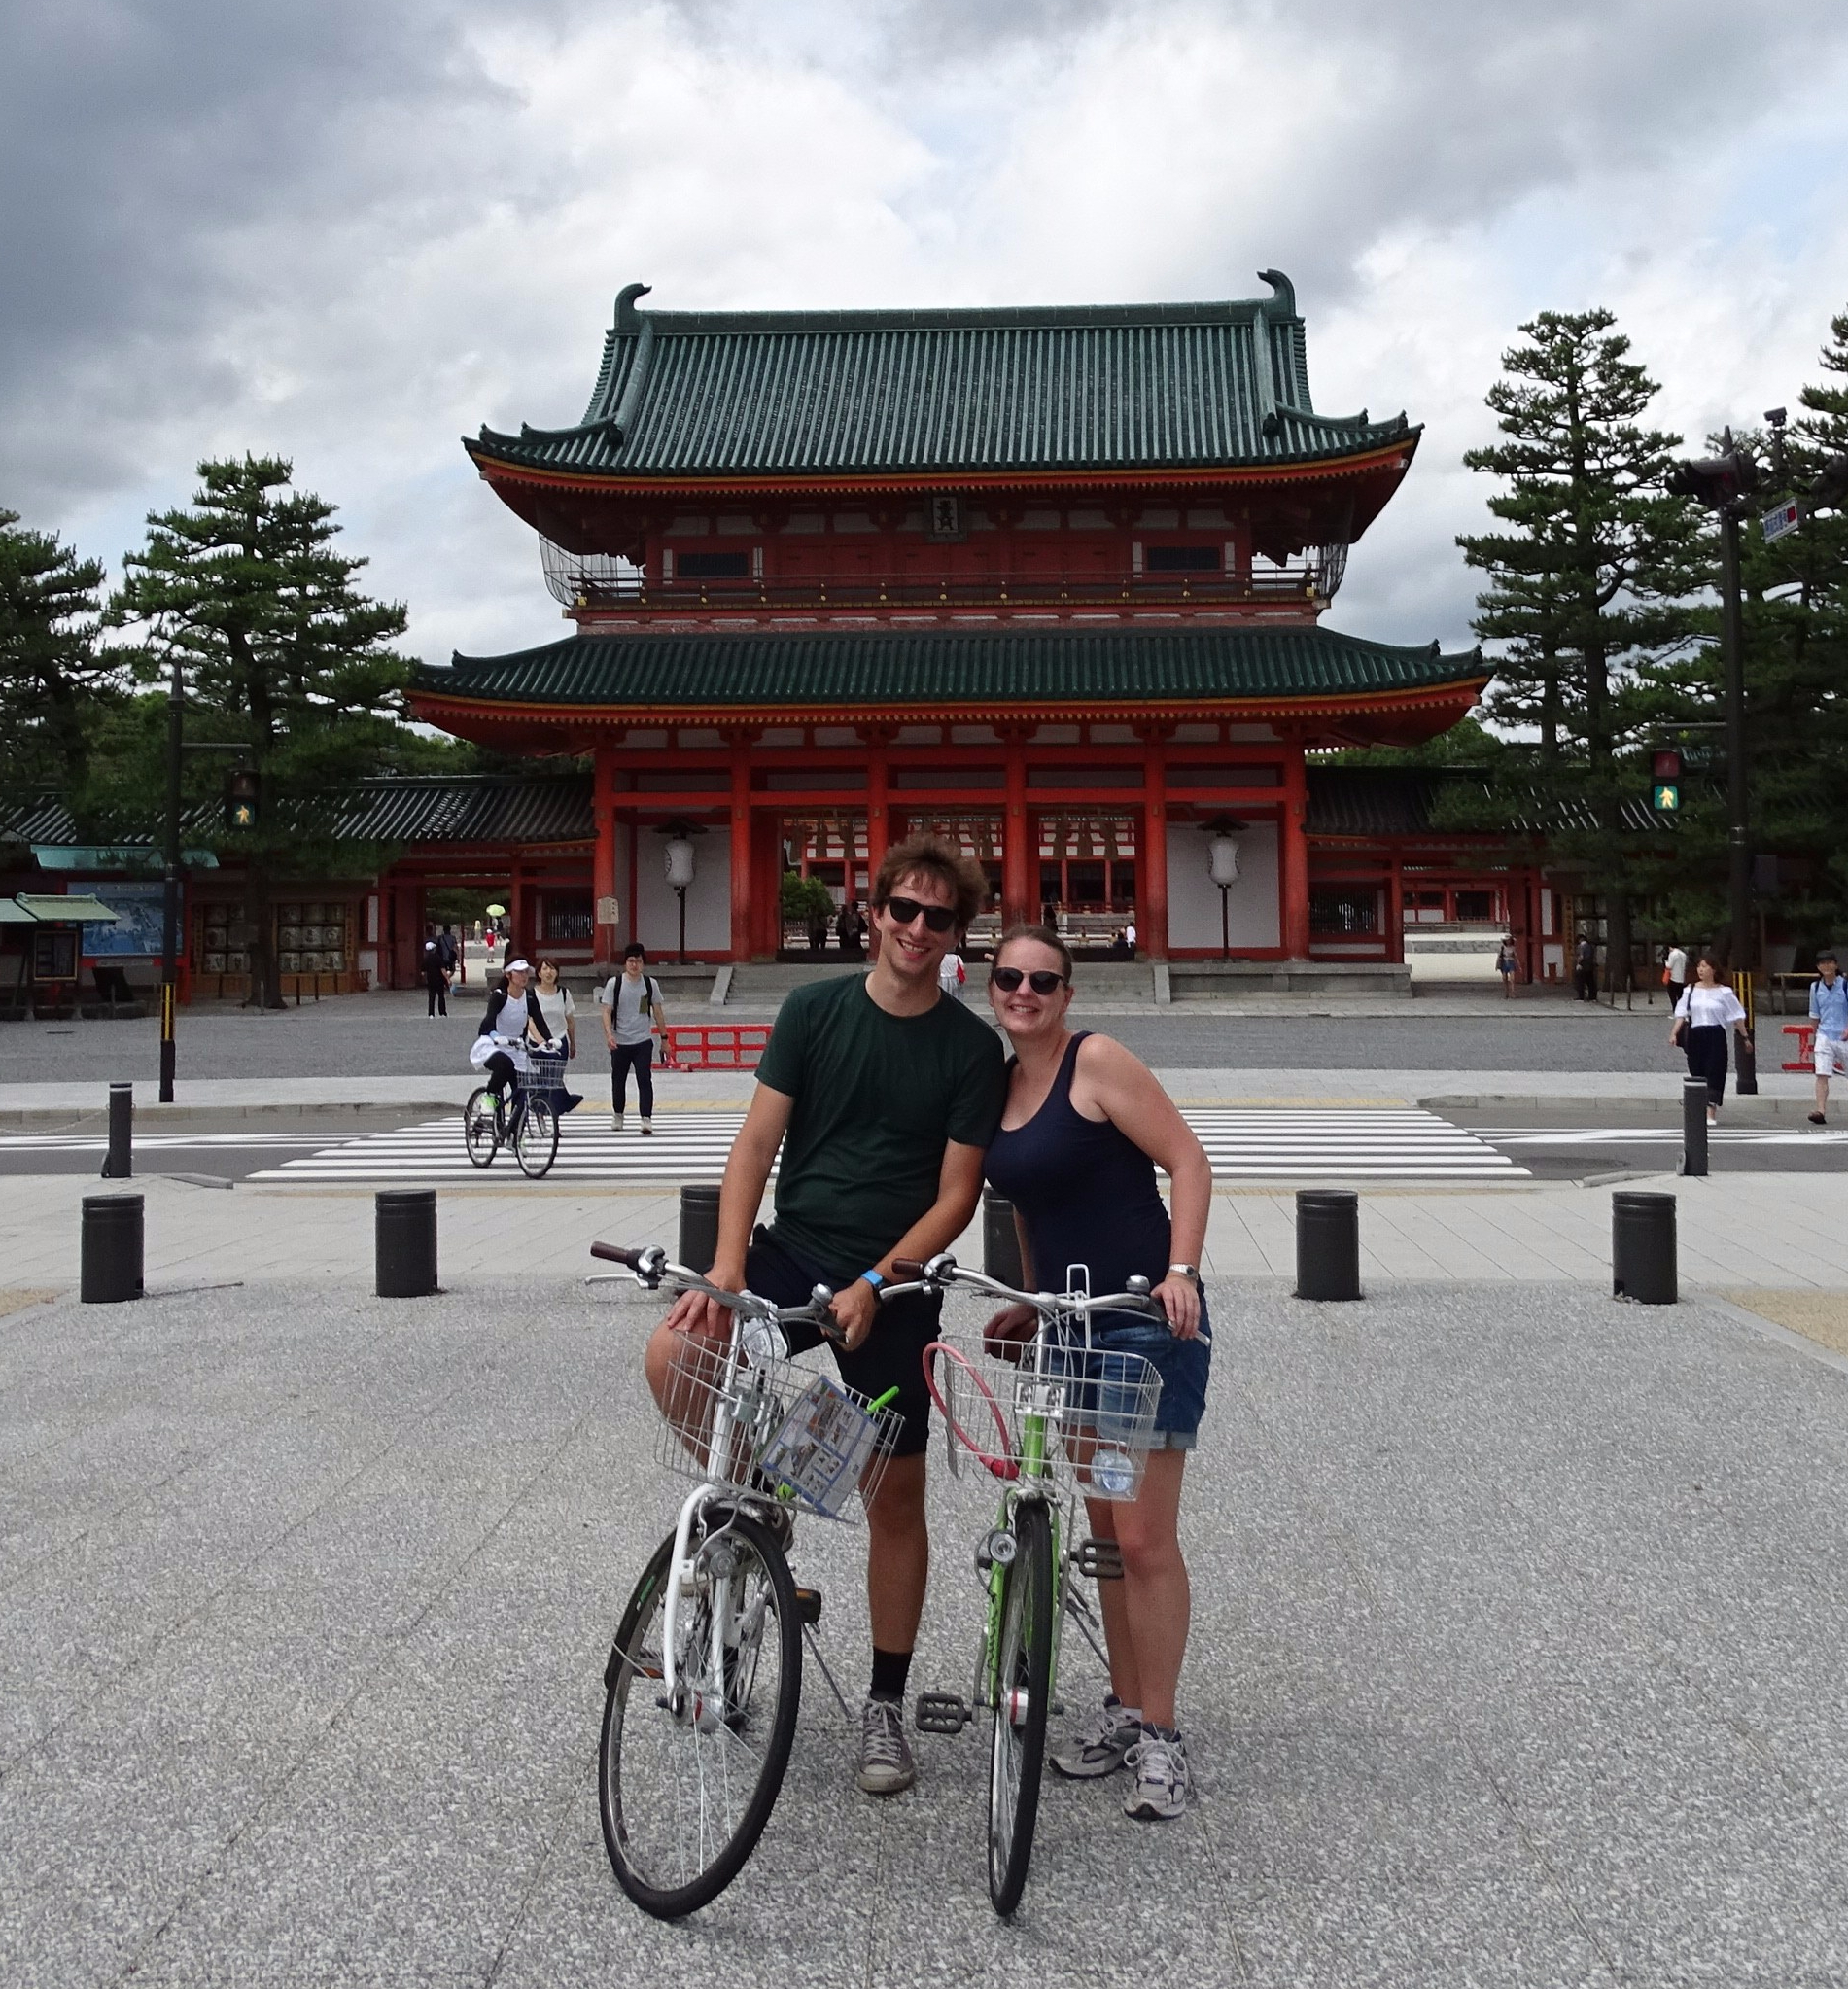 kyoto japan tempel temple biking biketour